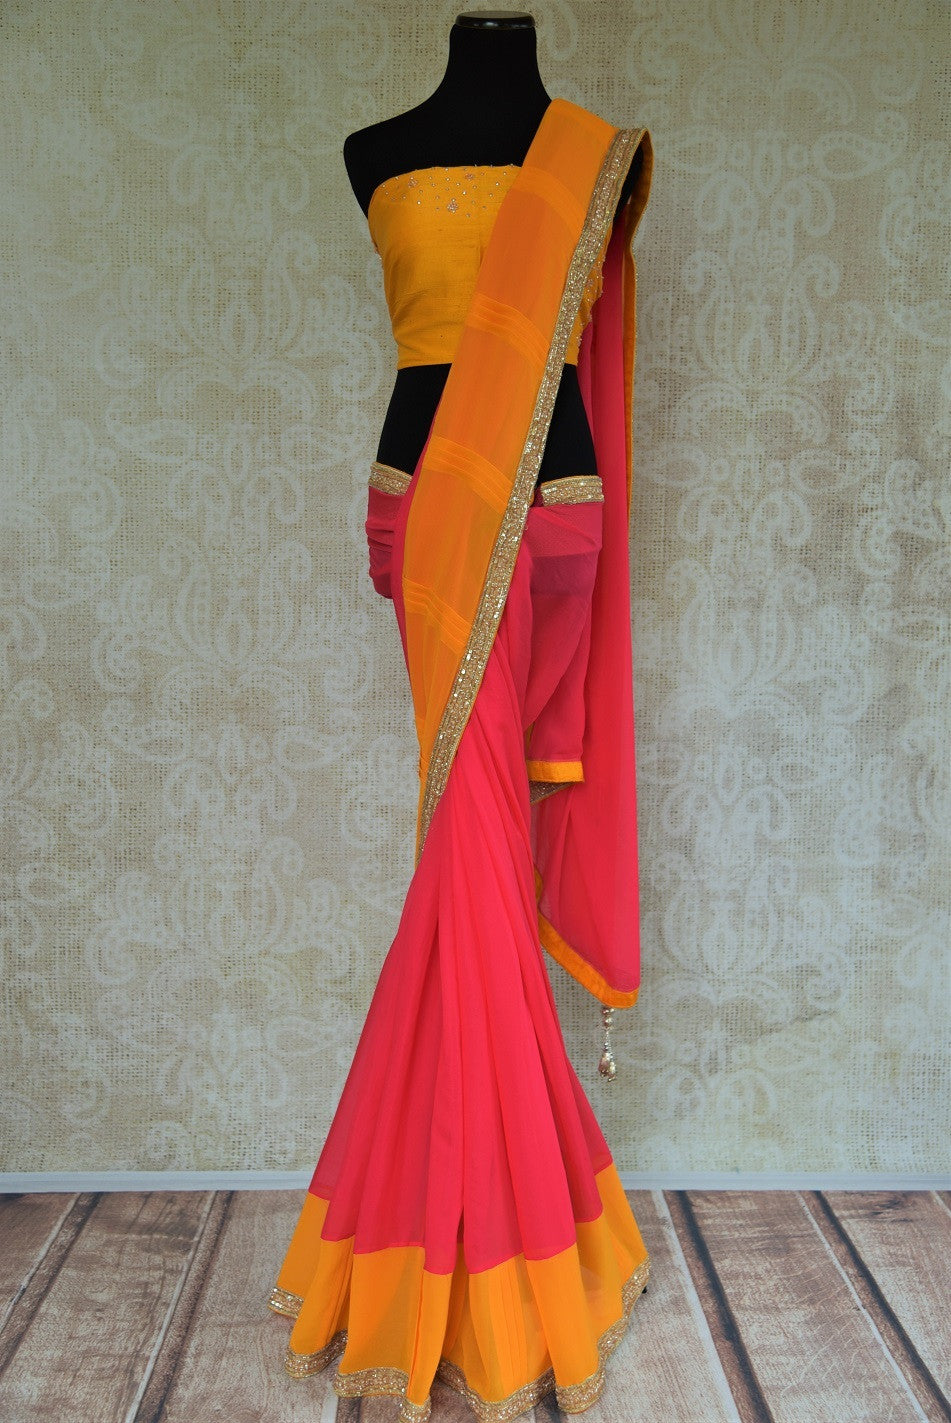 90B933 Pink & yellow sari with a metallic border. Buy this georgette party wear sari online at our Indian clothing store in USA & add it to your ethnic wear collection. The simple sari can be styled in many ways and is a versatile item.